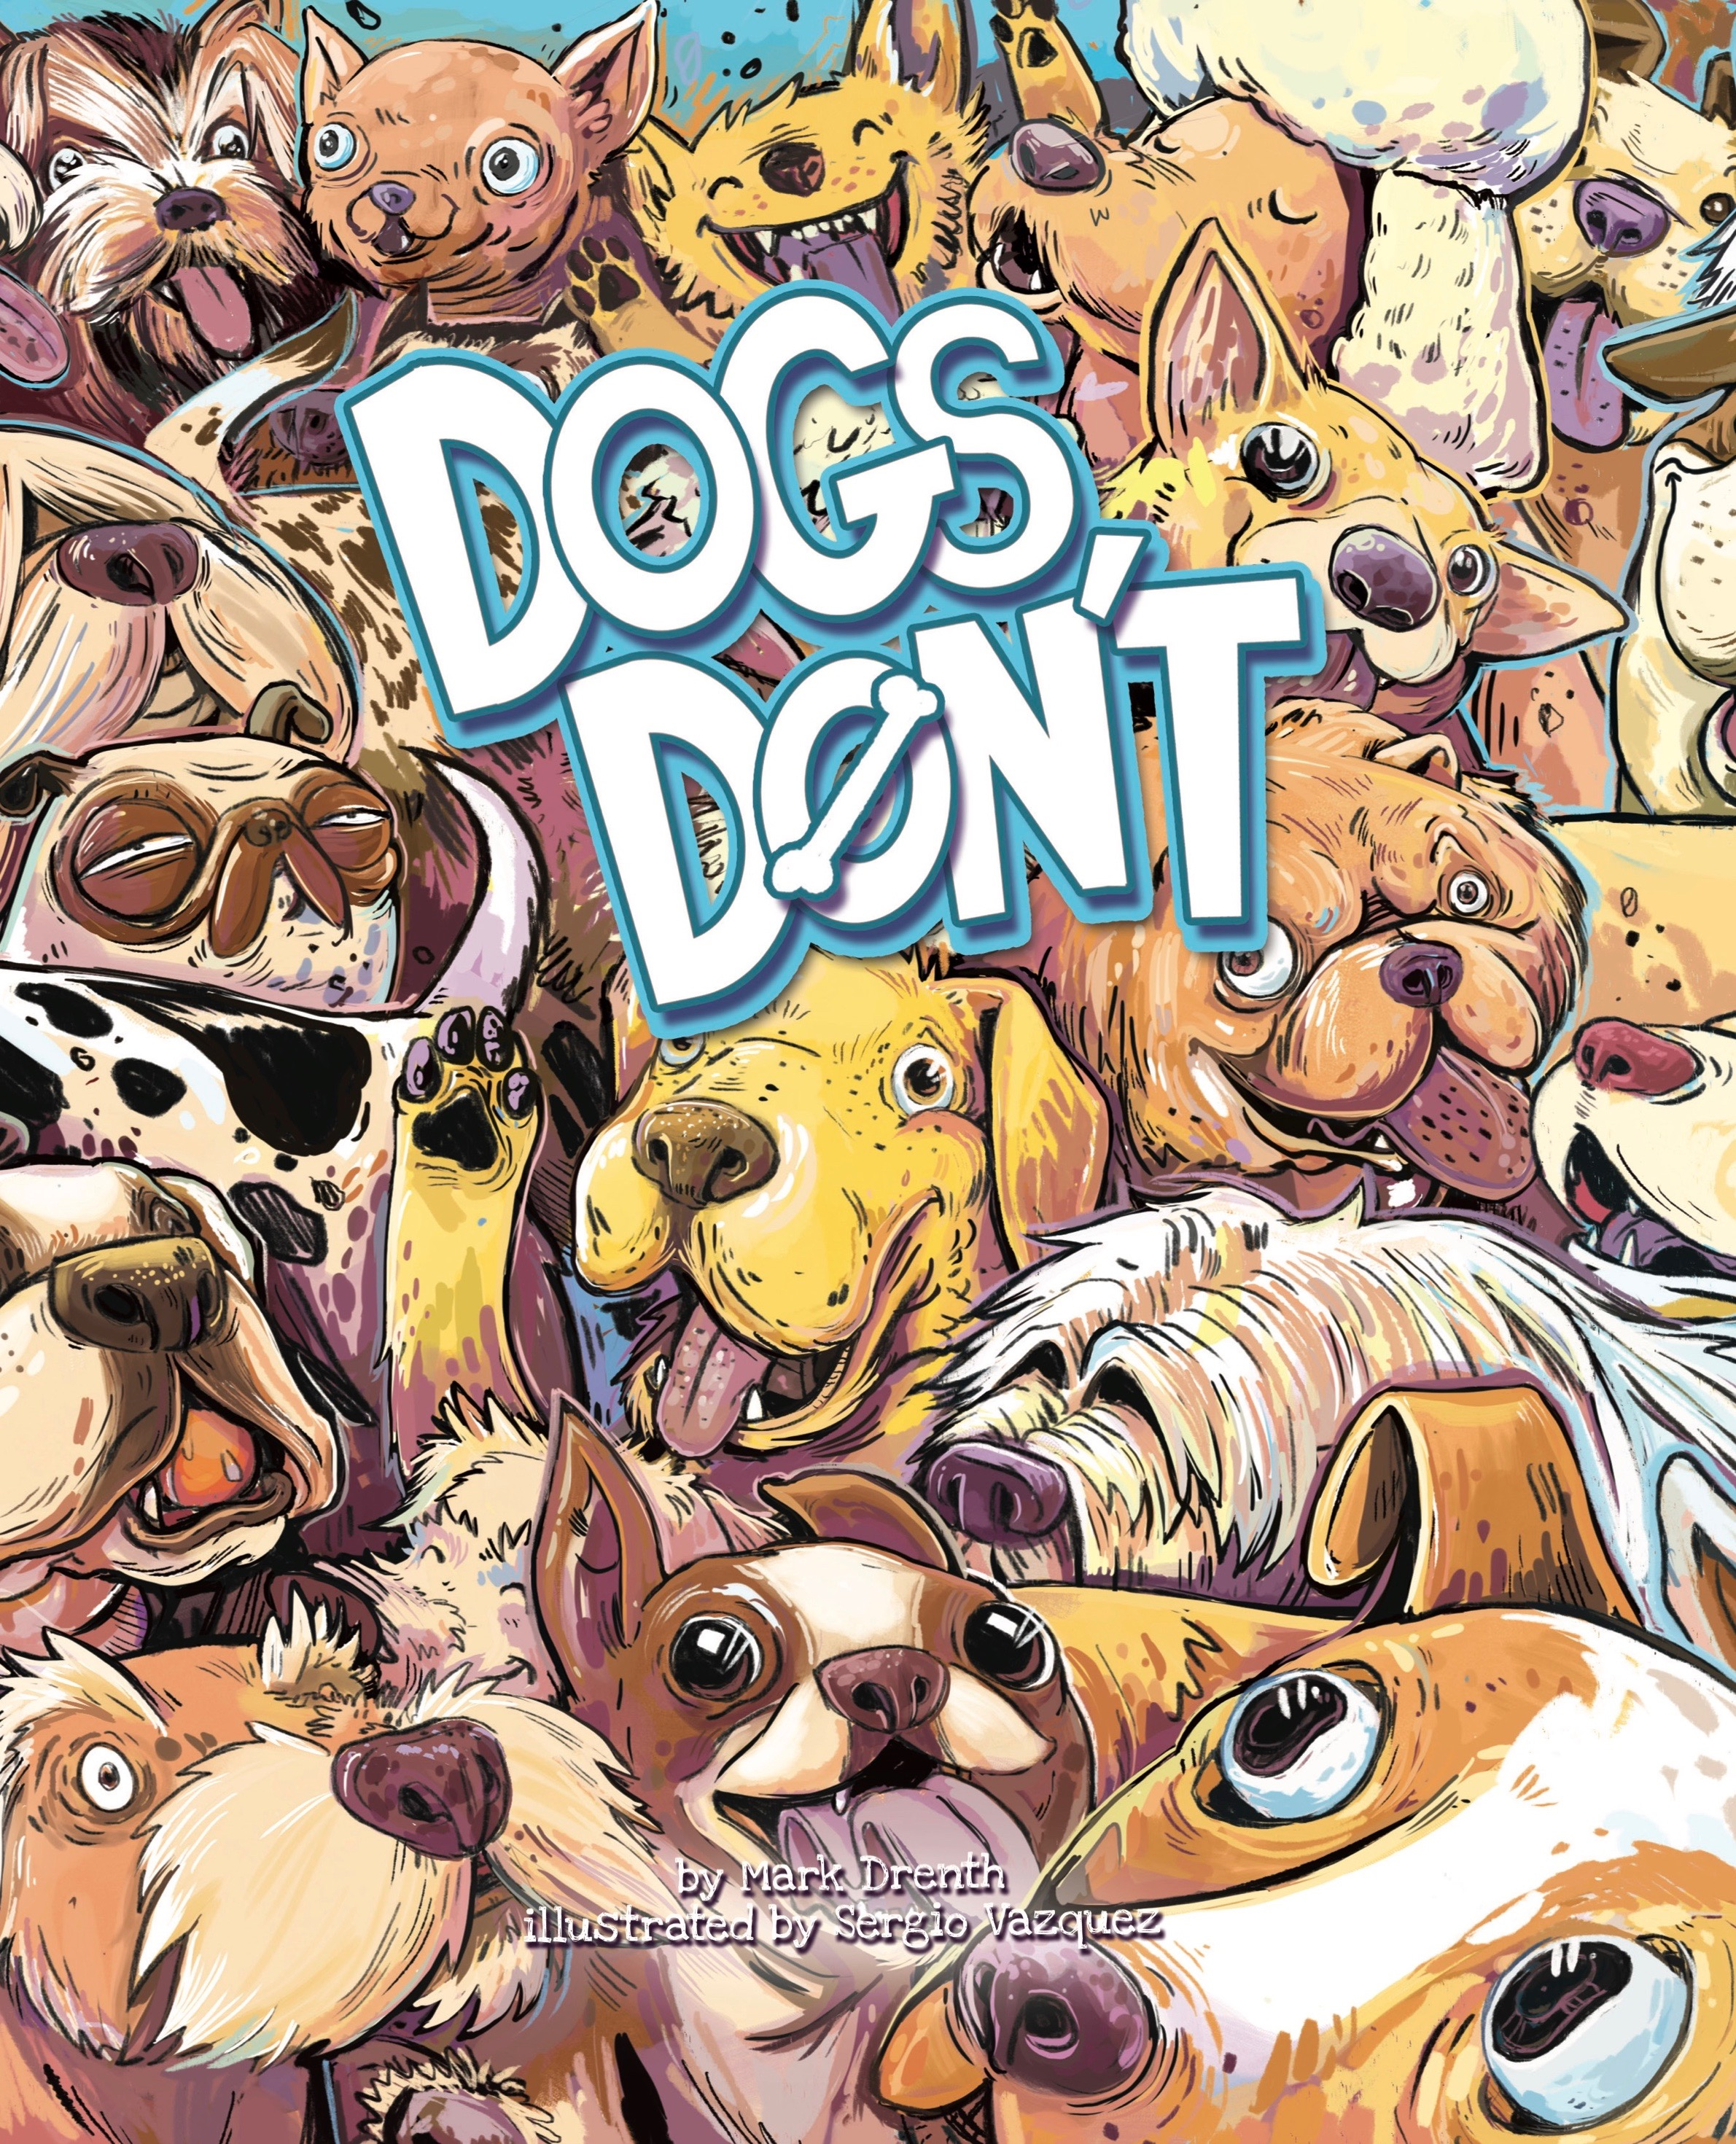 Dogs Don't